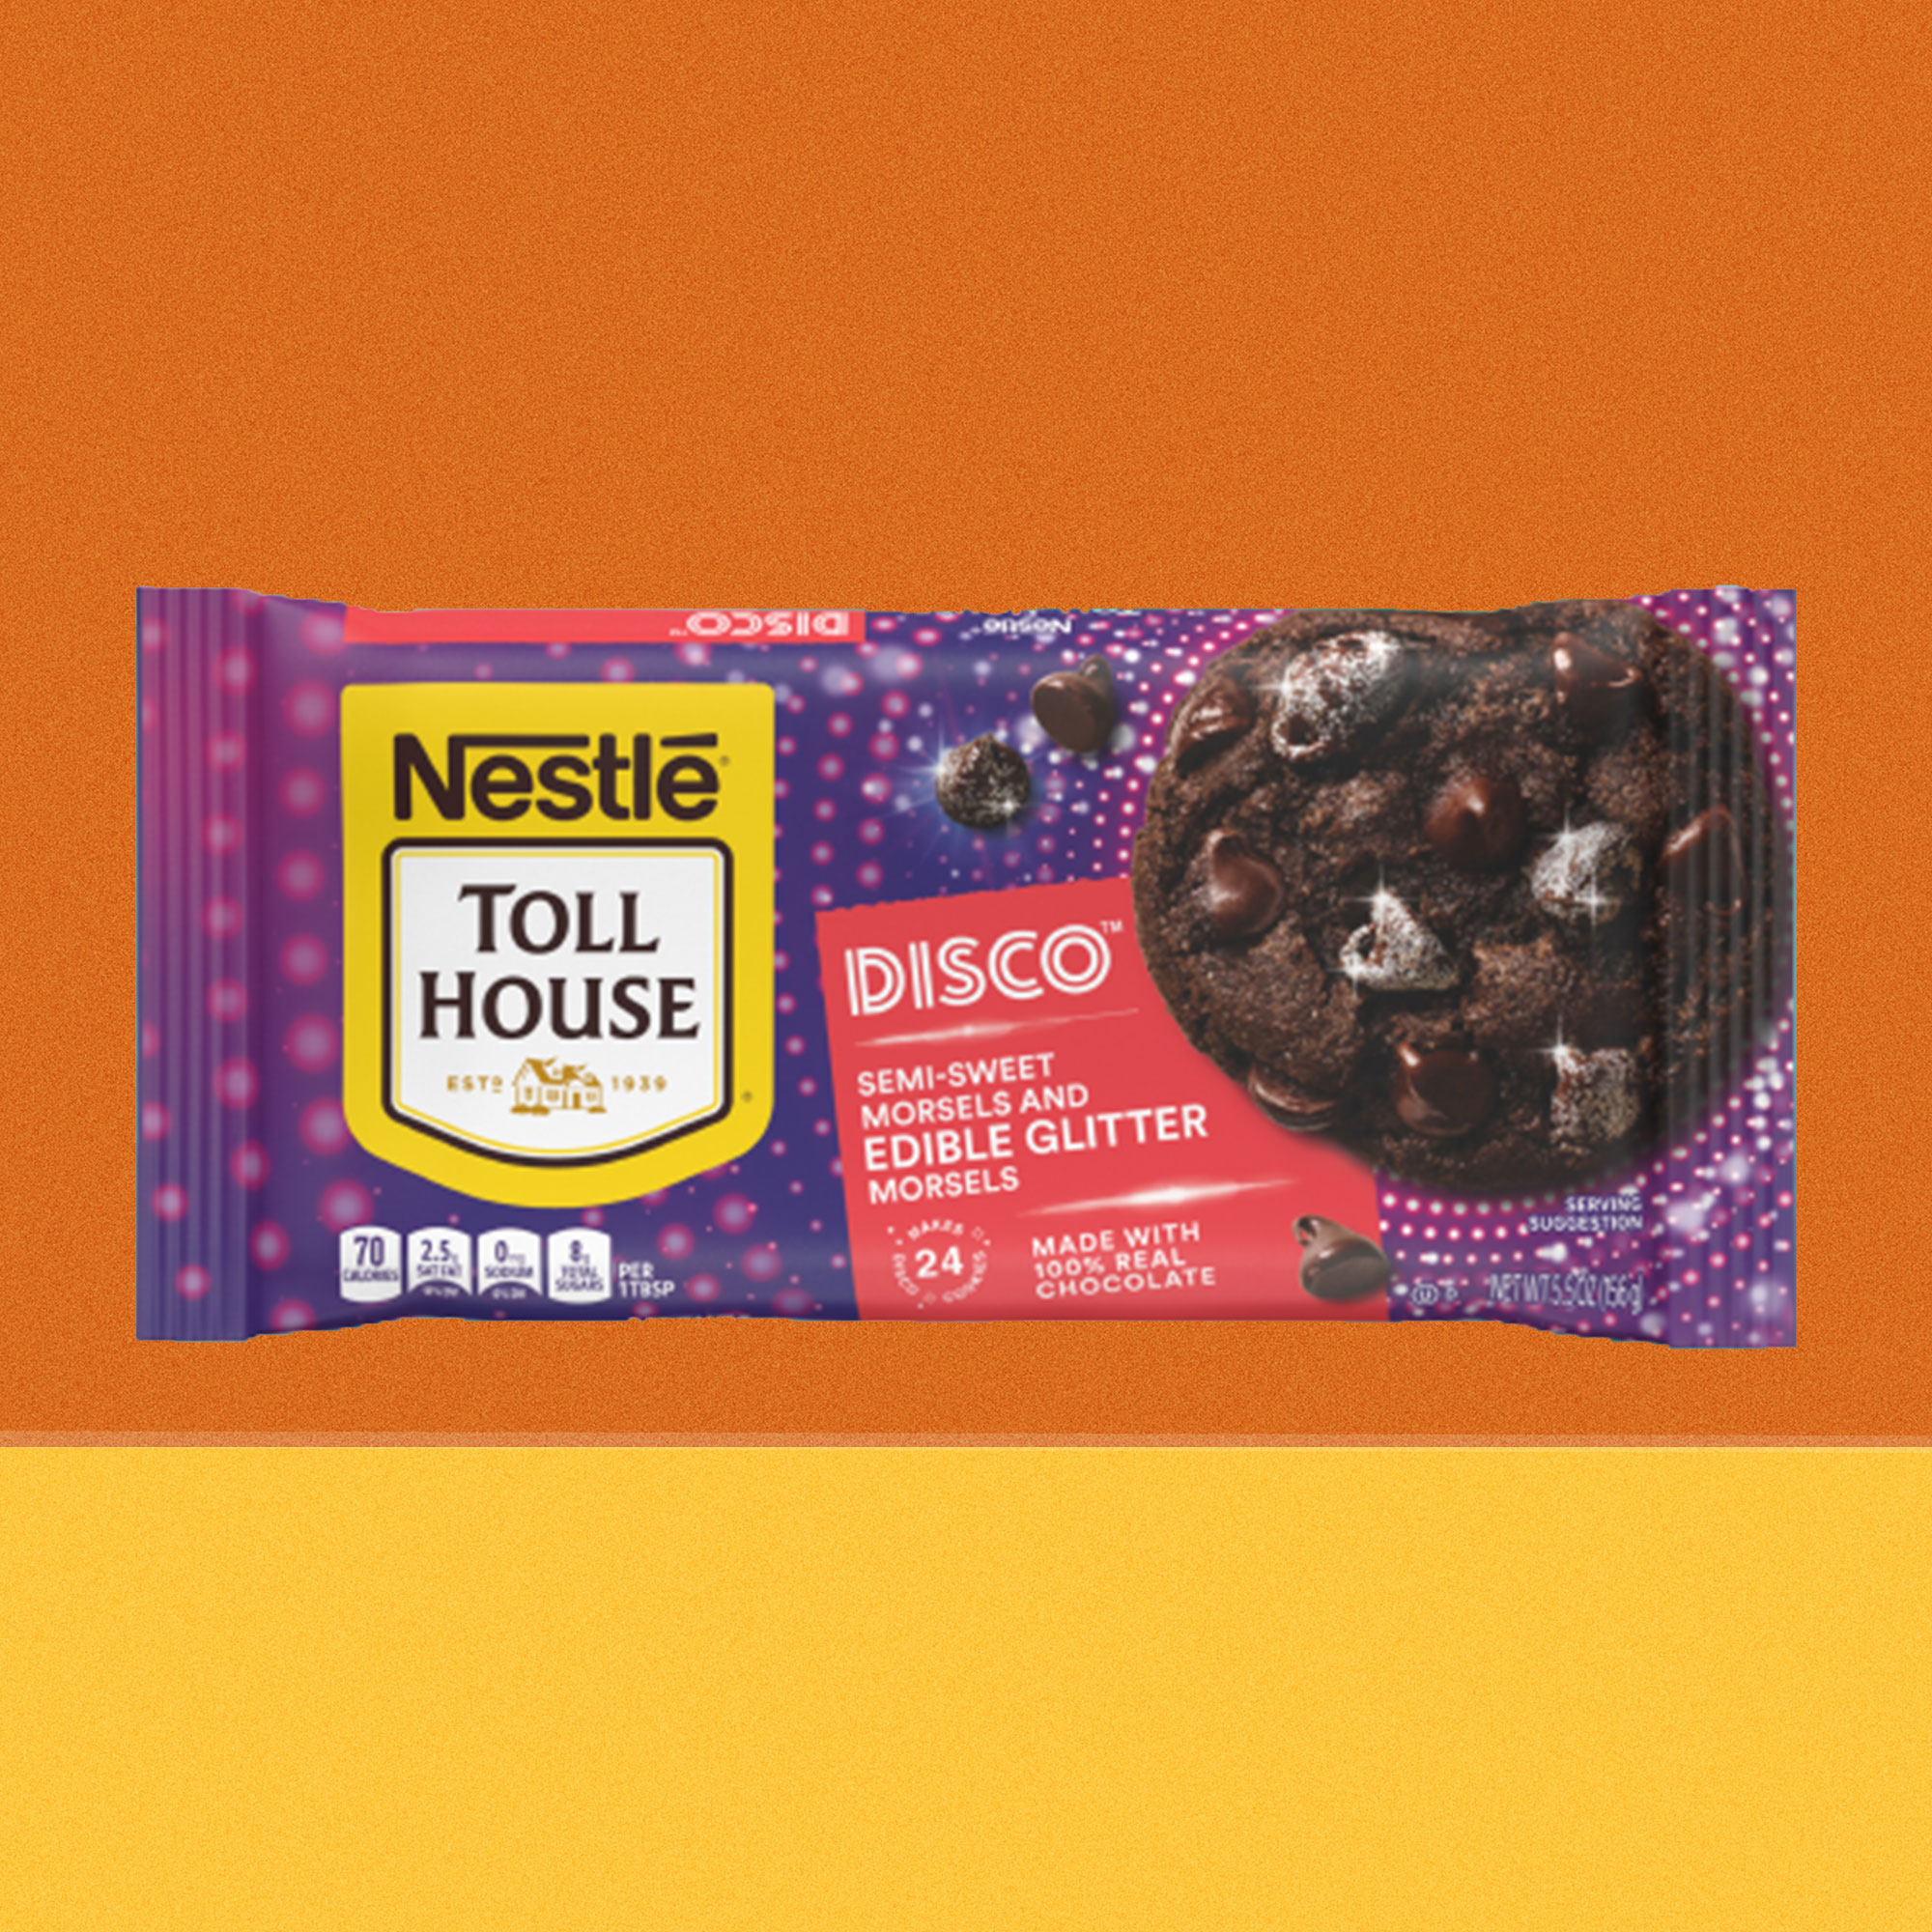 nestle toll house disco morsels with edible glitter